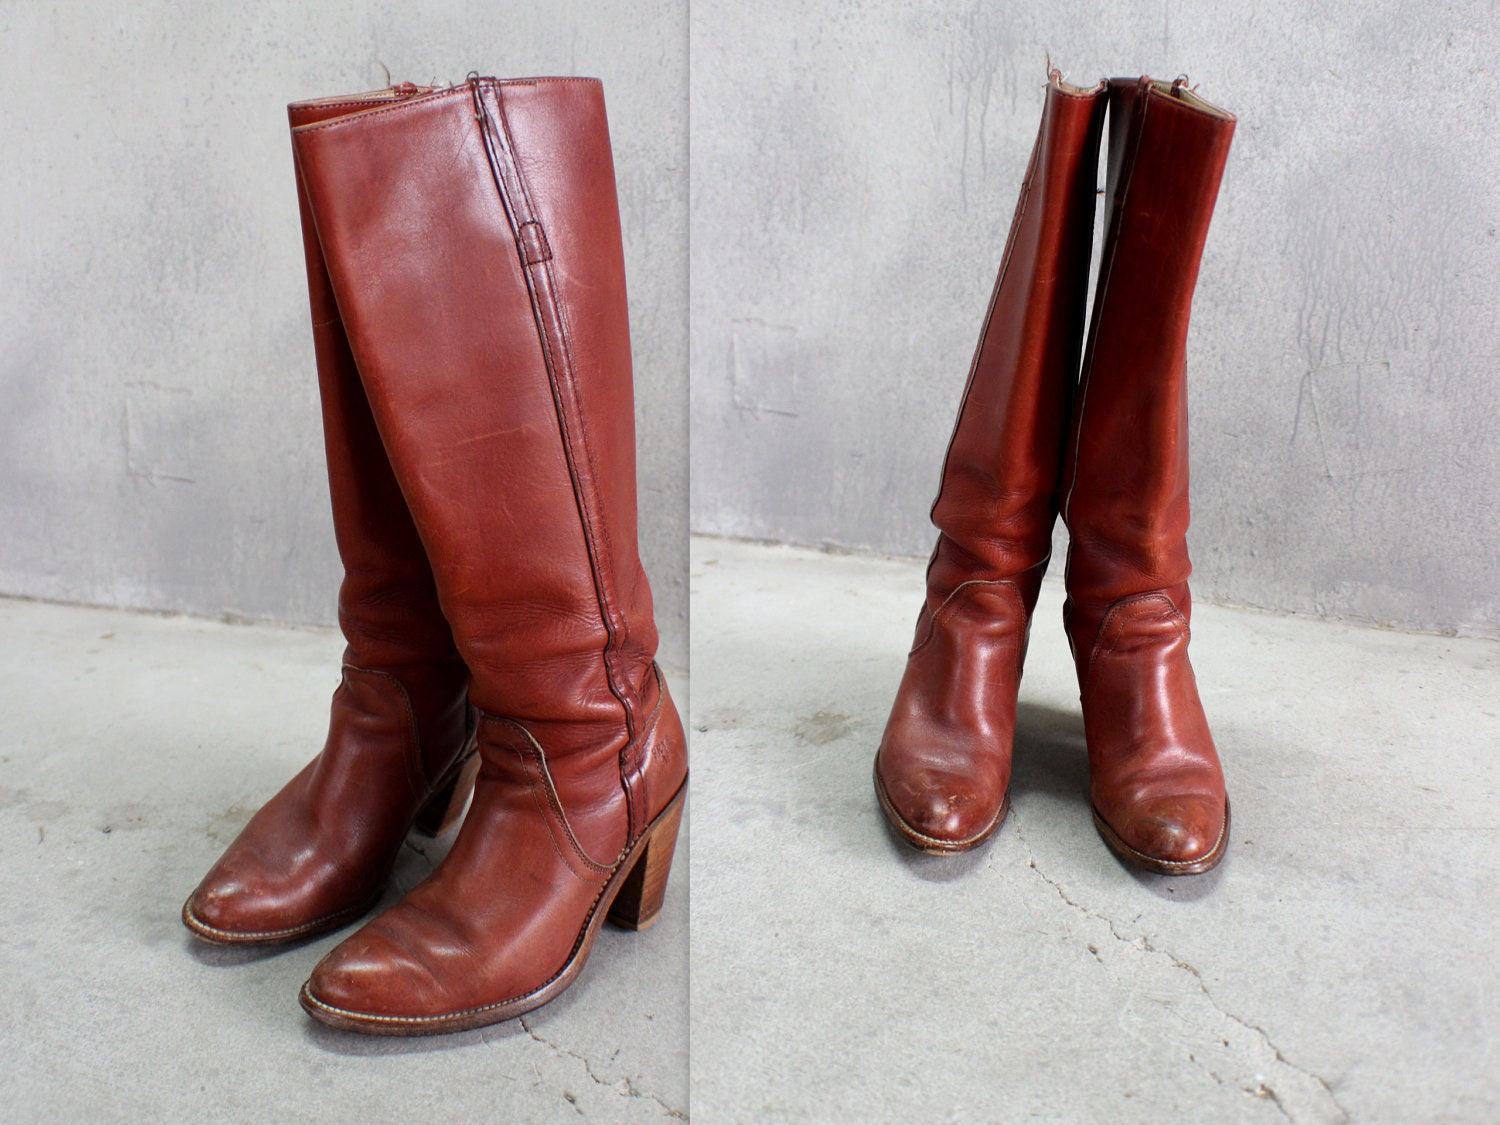 Frye vintage stacked heel boots brown leather 70 s tall boots size 5 1